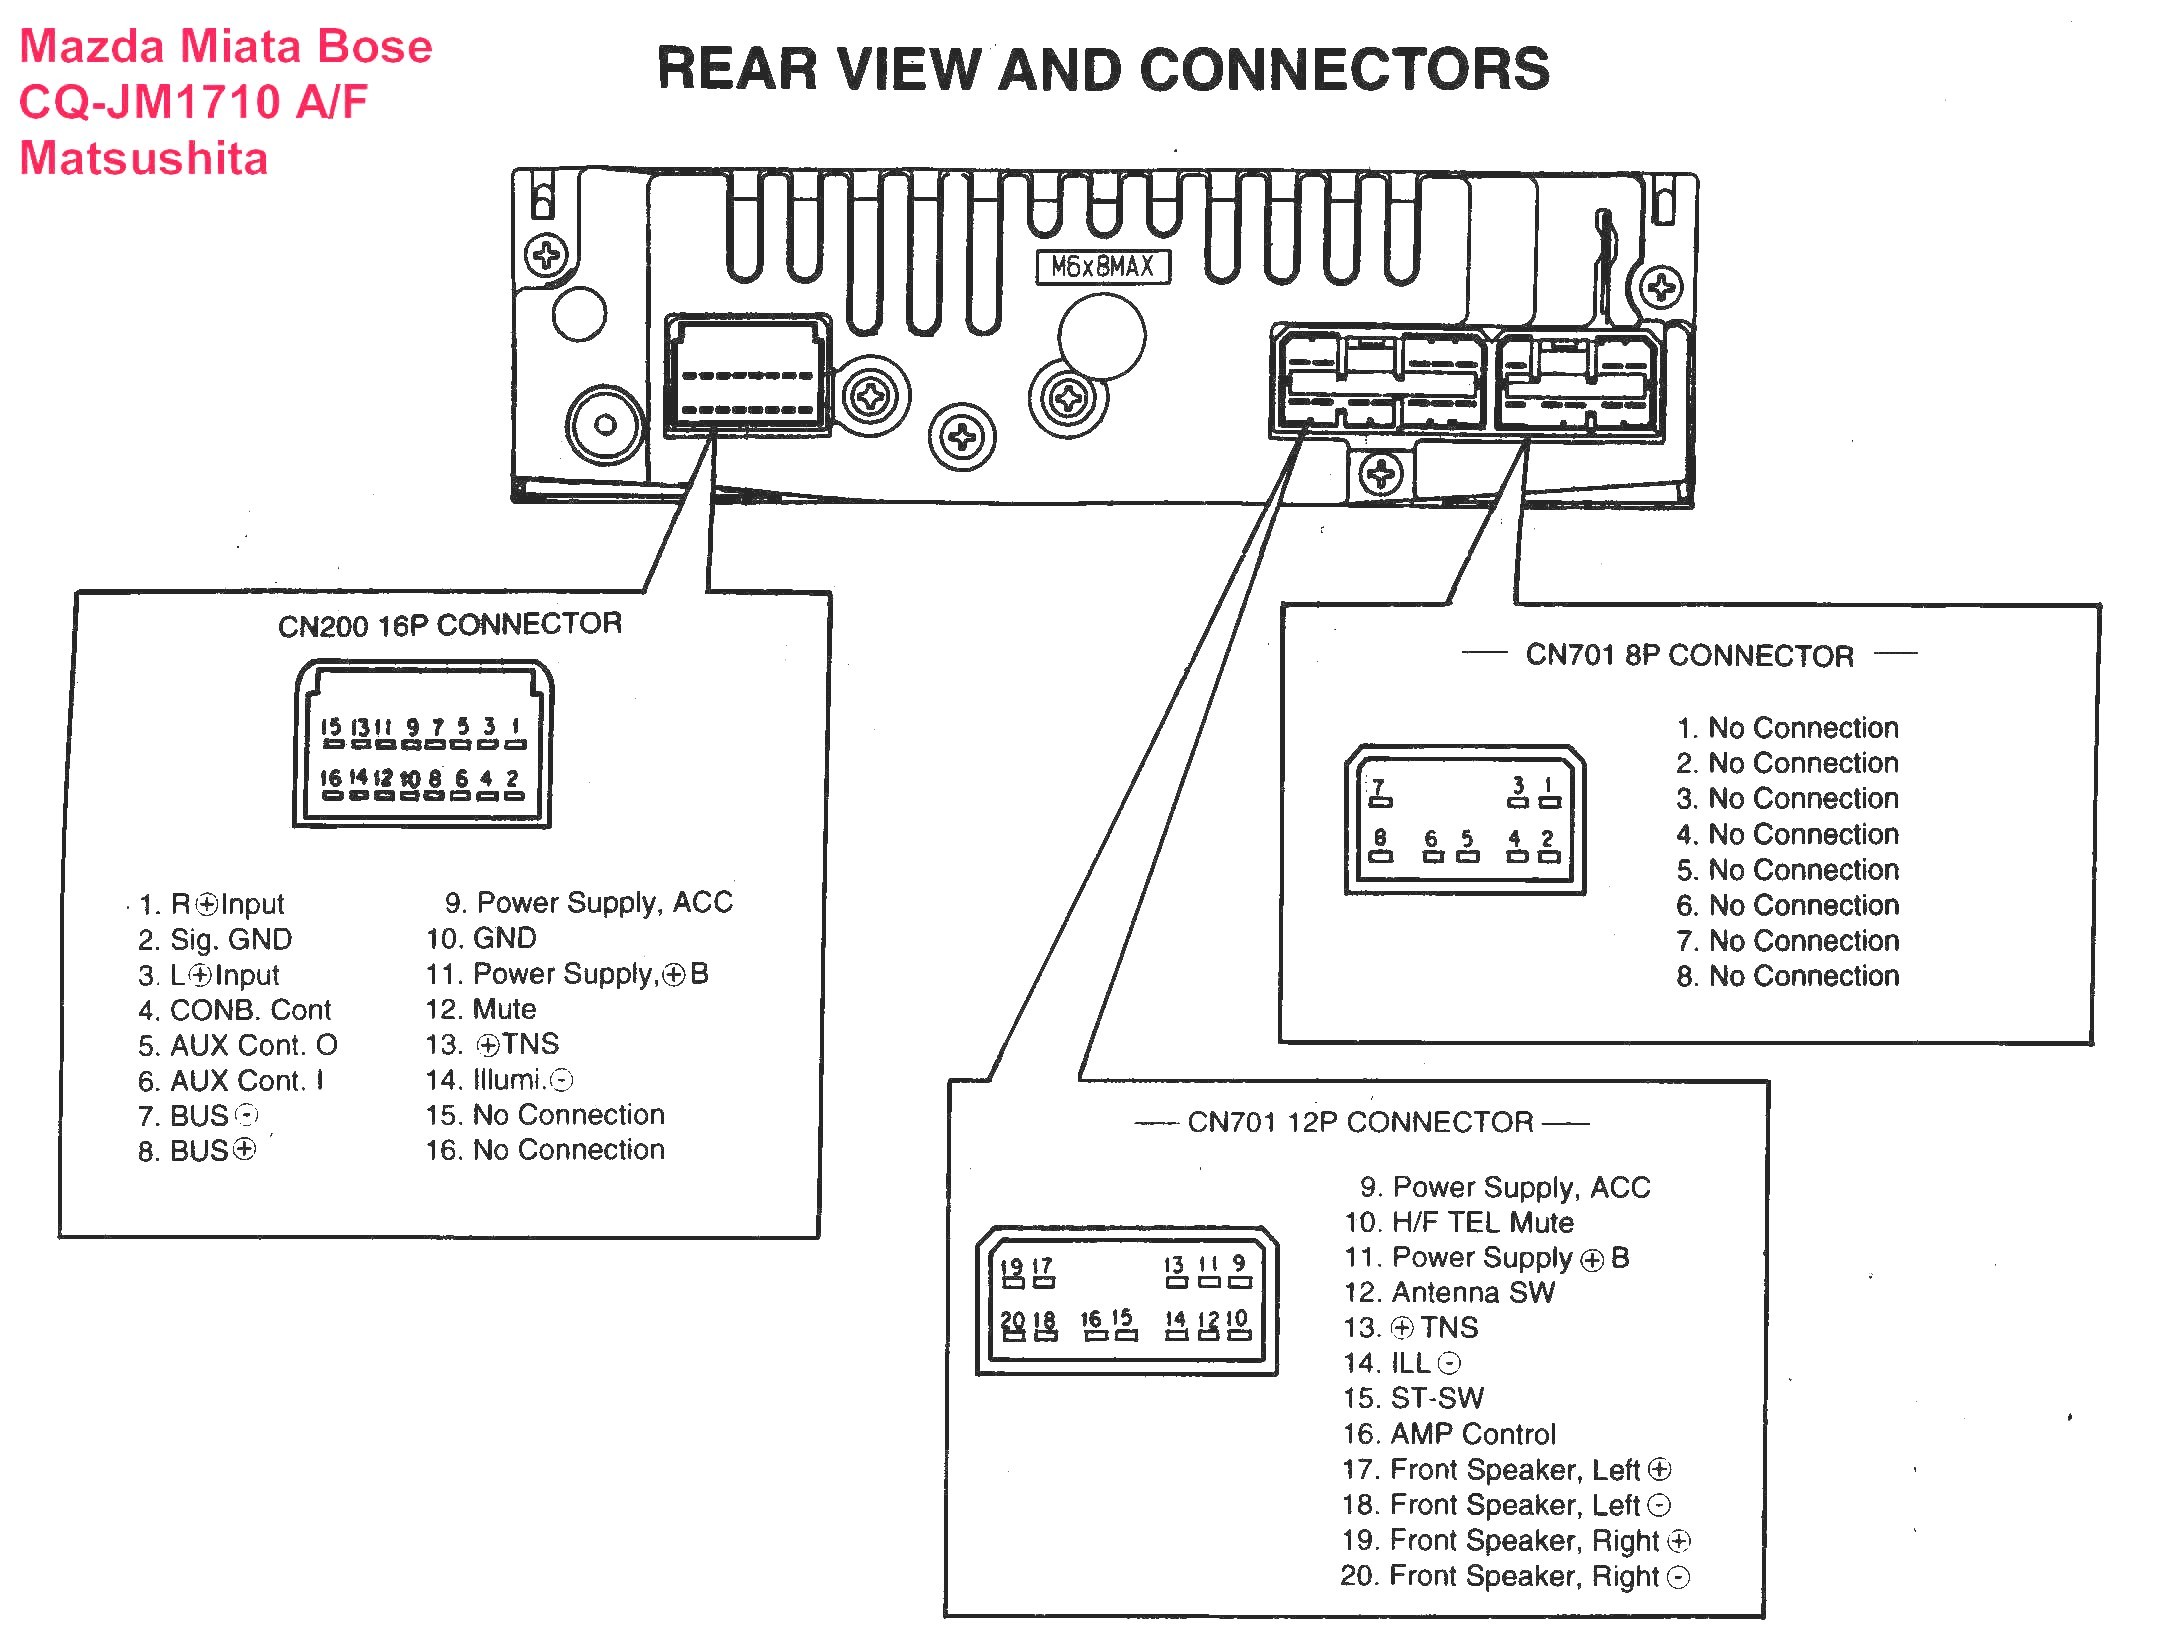 Wiring Diagram for Car Audio System Car Diagram Car Stereo Wiring Harnessolorodes Diagram Zen Audio Of Wiring Diagram for Car Audio System